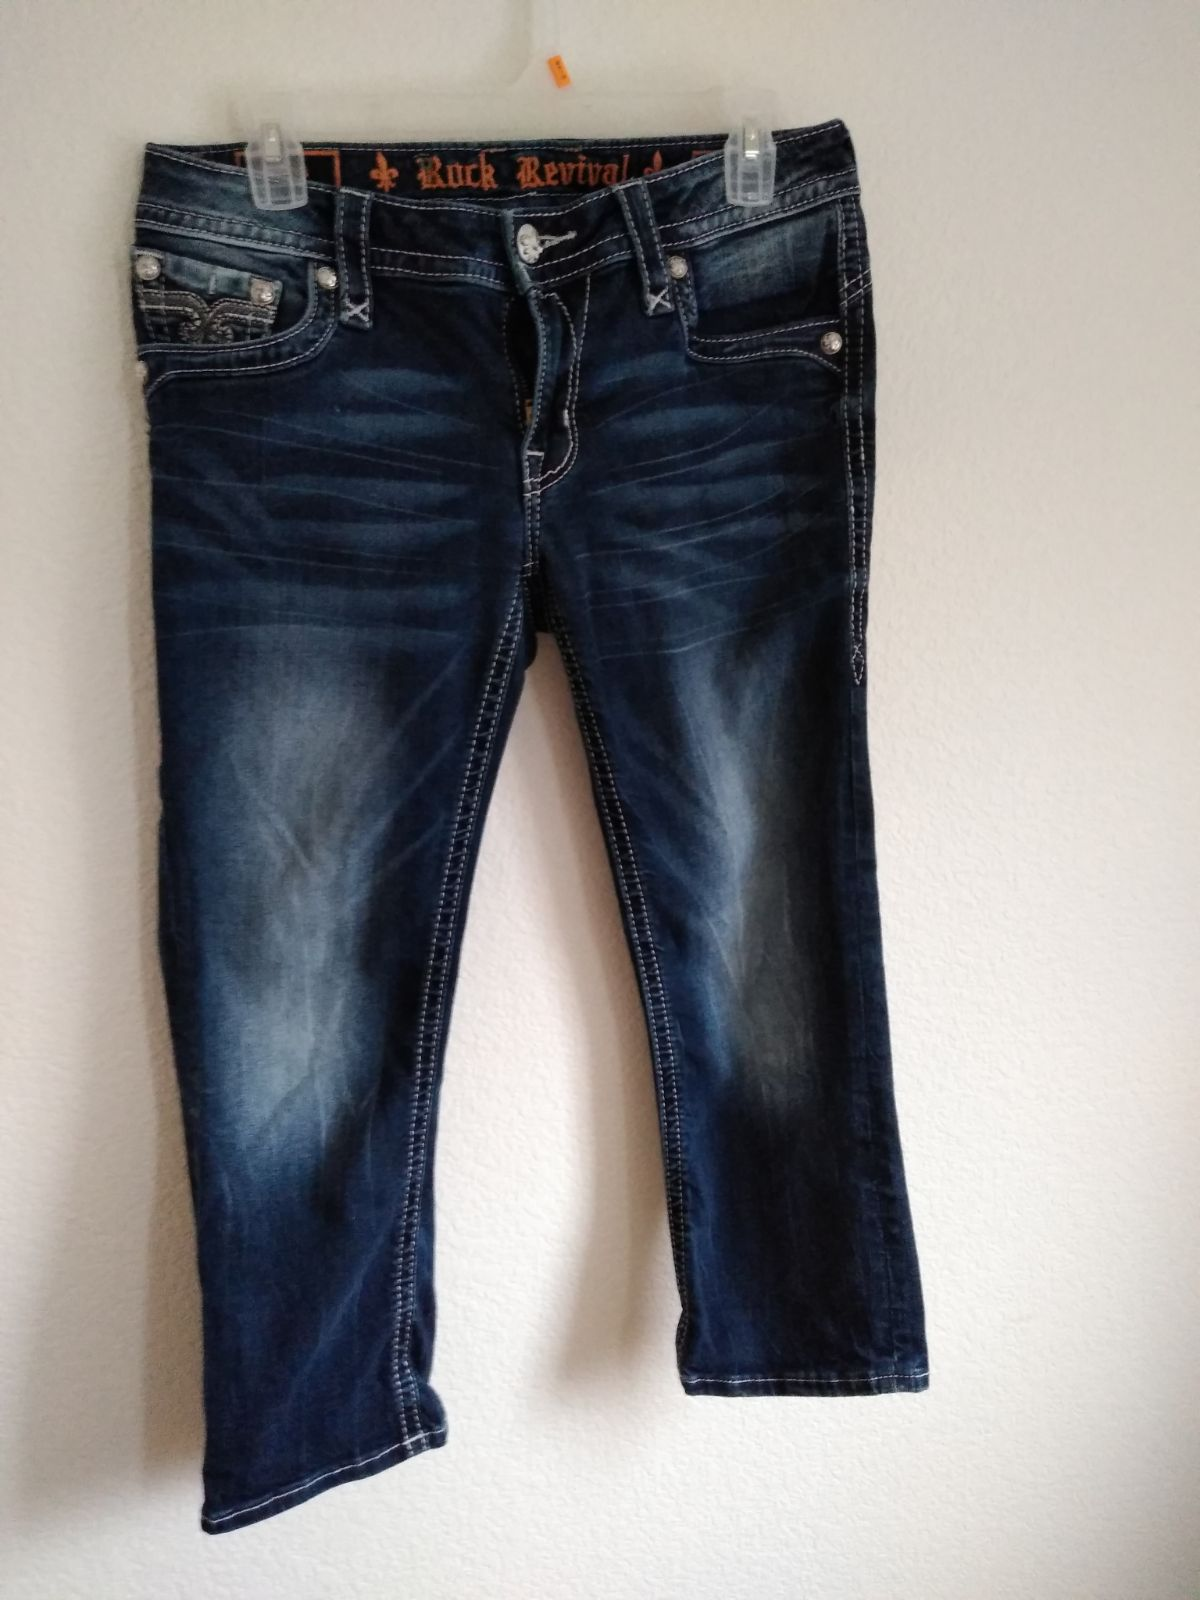 "Rock Revival Denim Jeans Women's 29"" EUC"